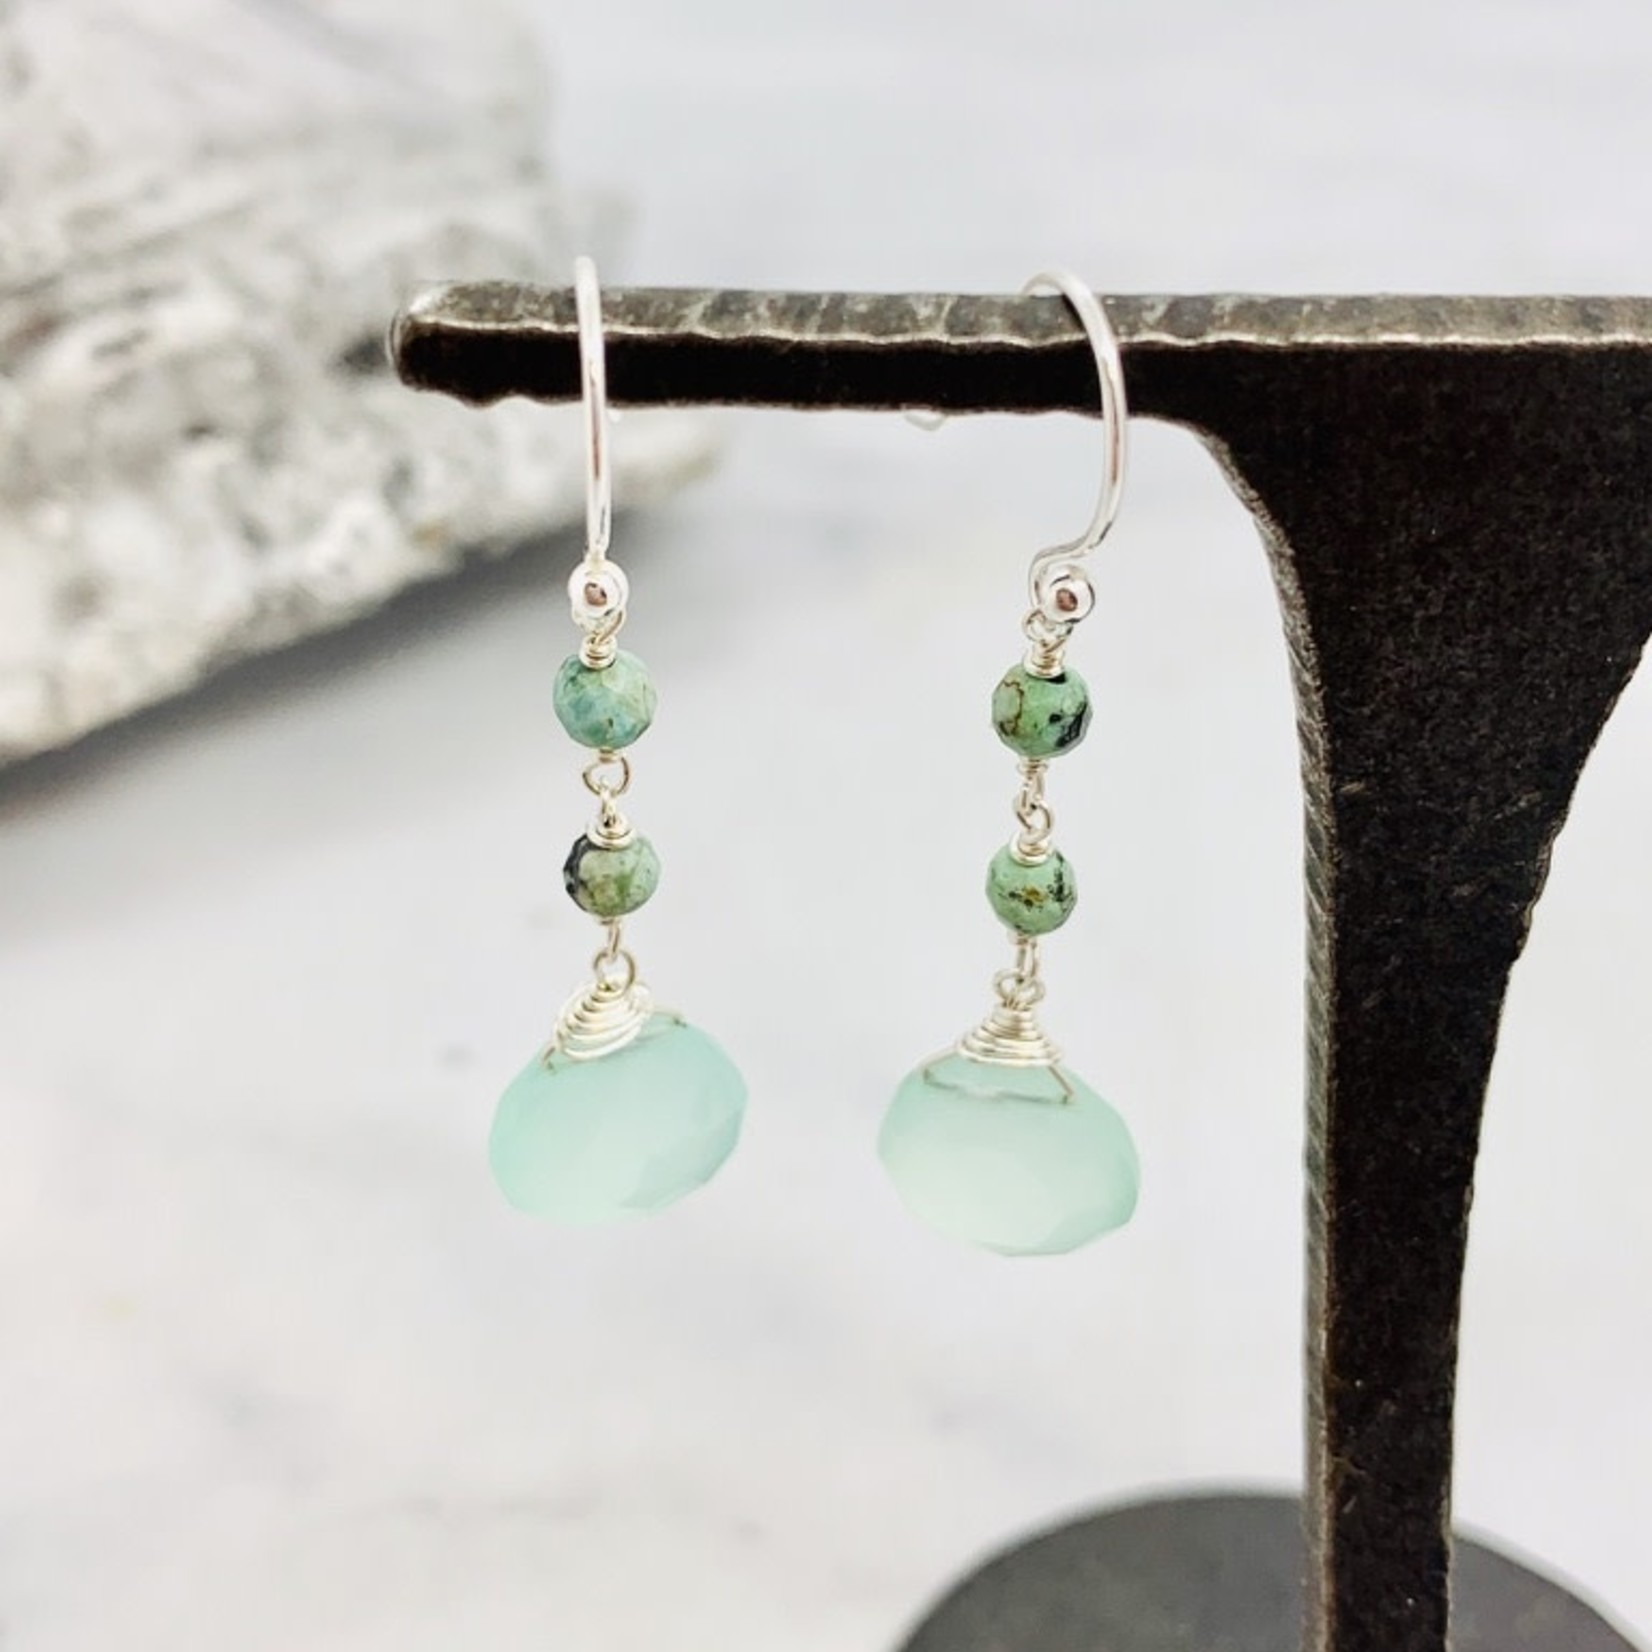 Handmade earrings with 2 small turquoise and a peruvian chalcedony drop, SS